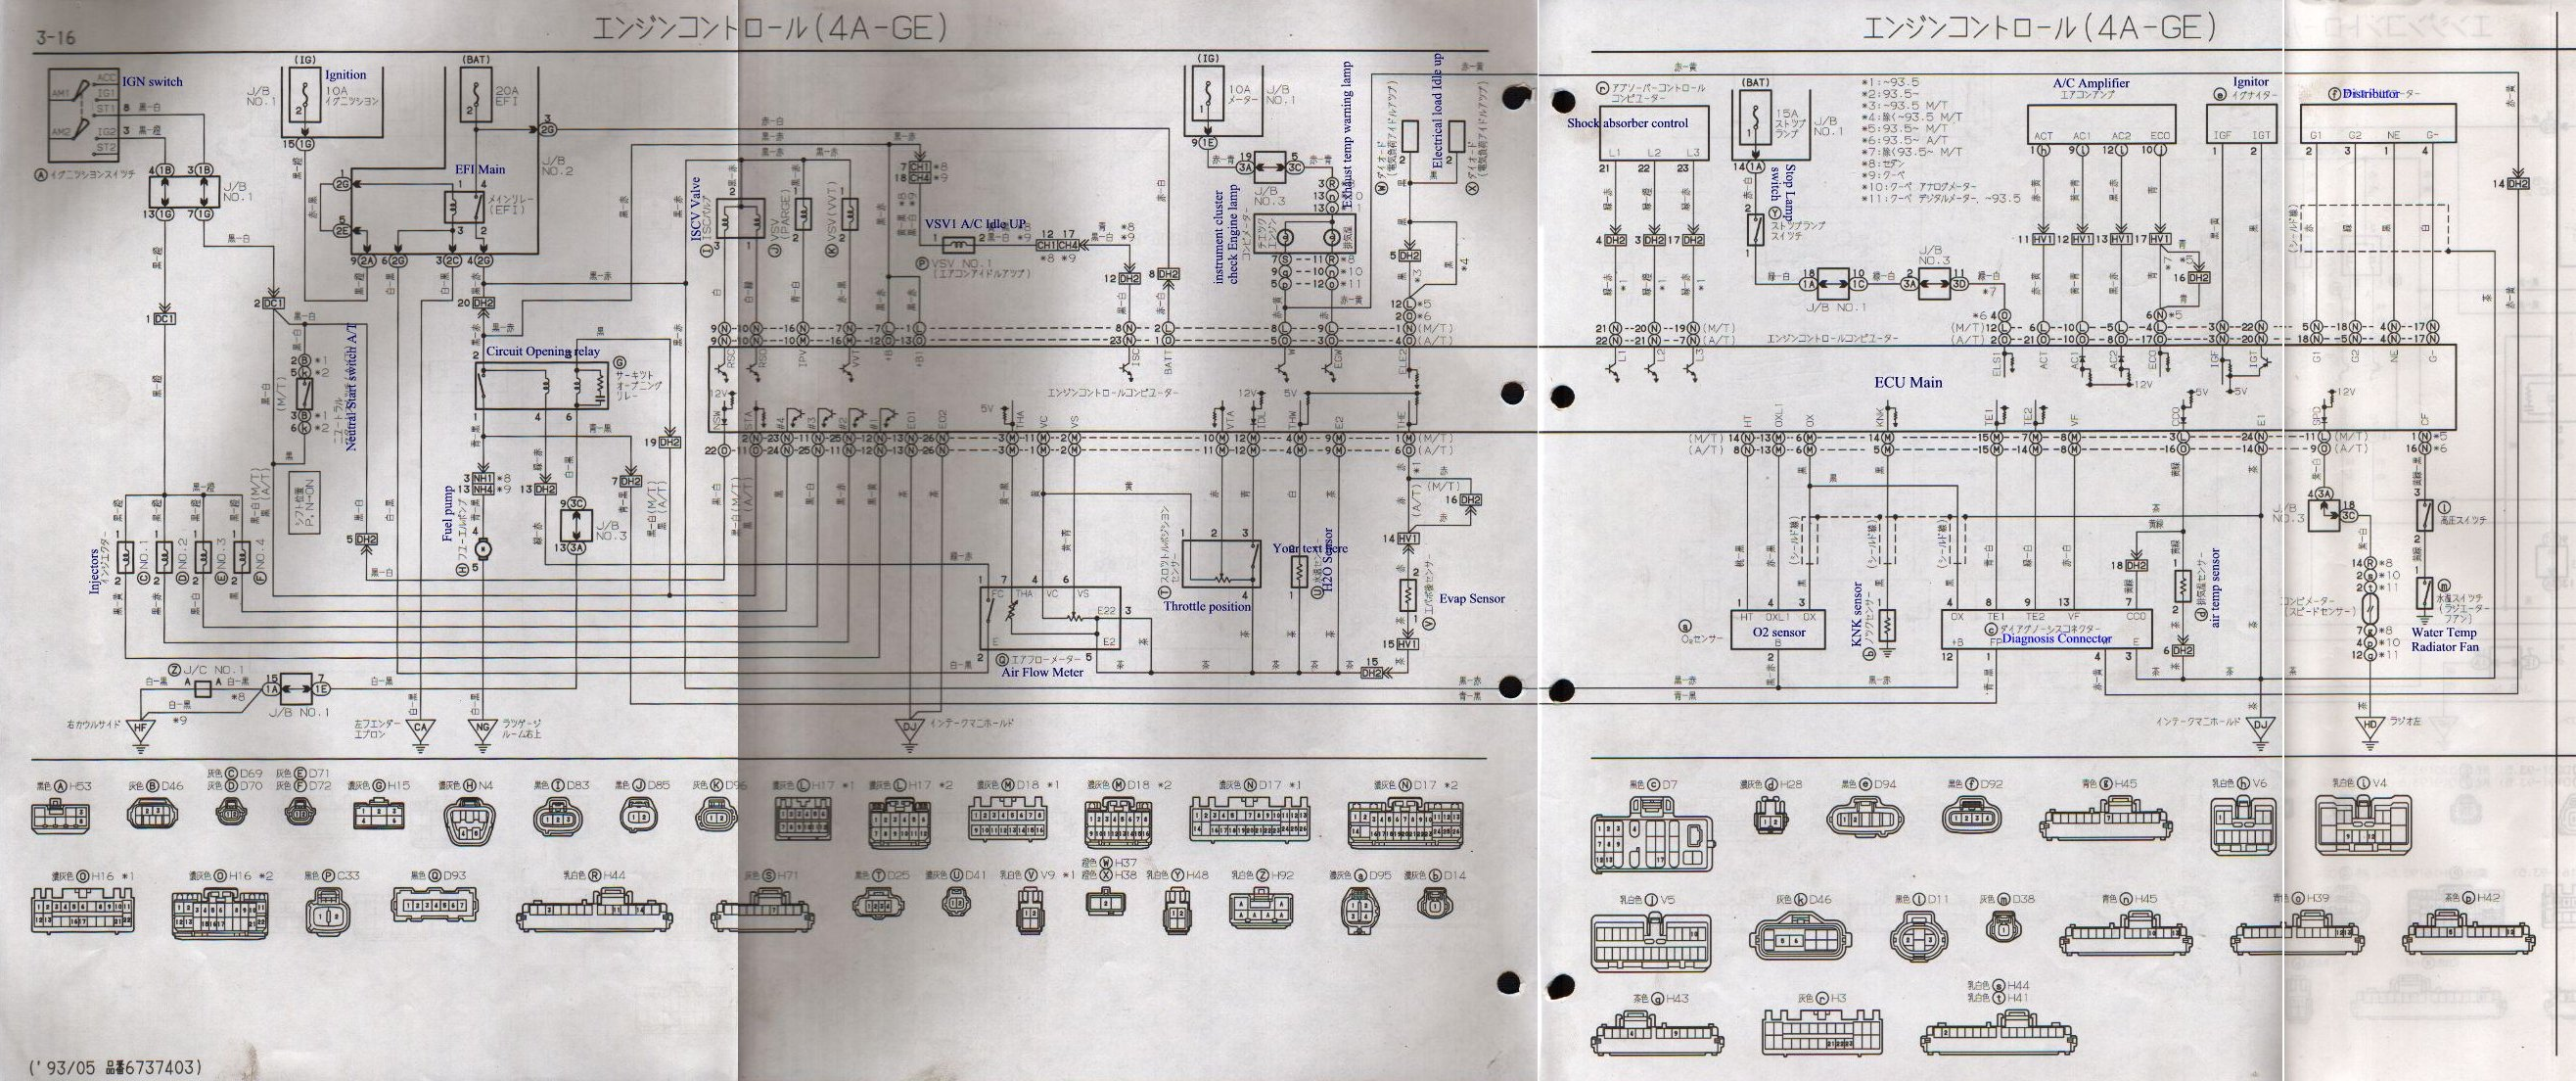 1990 Toyota Celica Headlight Wiring Diagram 43 Rav4 Silvertop 100 Echo 2004 Replace Alternator Belt 1994 Pickup